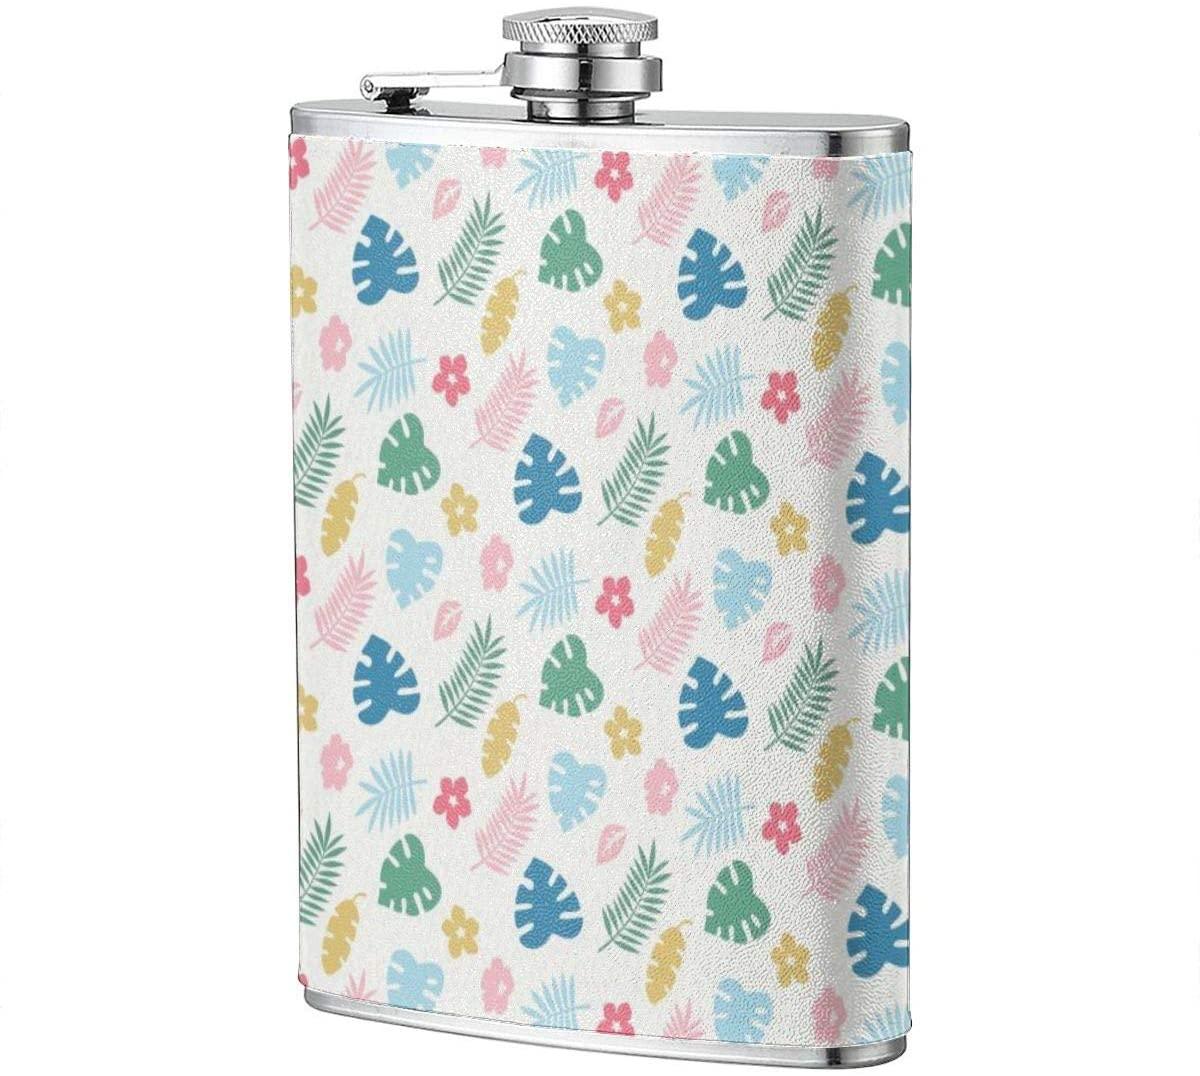 Colored Turtle Leaf Floral Portable 8 Oz Stainless Steel Leak-Proof Hip Flask For Whiskey With Leather Wrap Travel Camping Wine Pot Flagon For Men Women